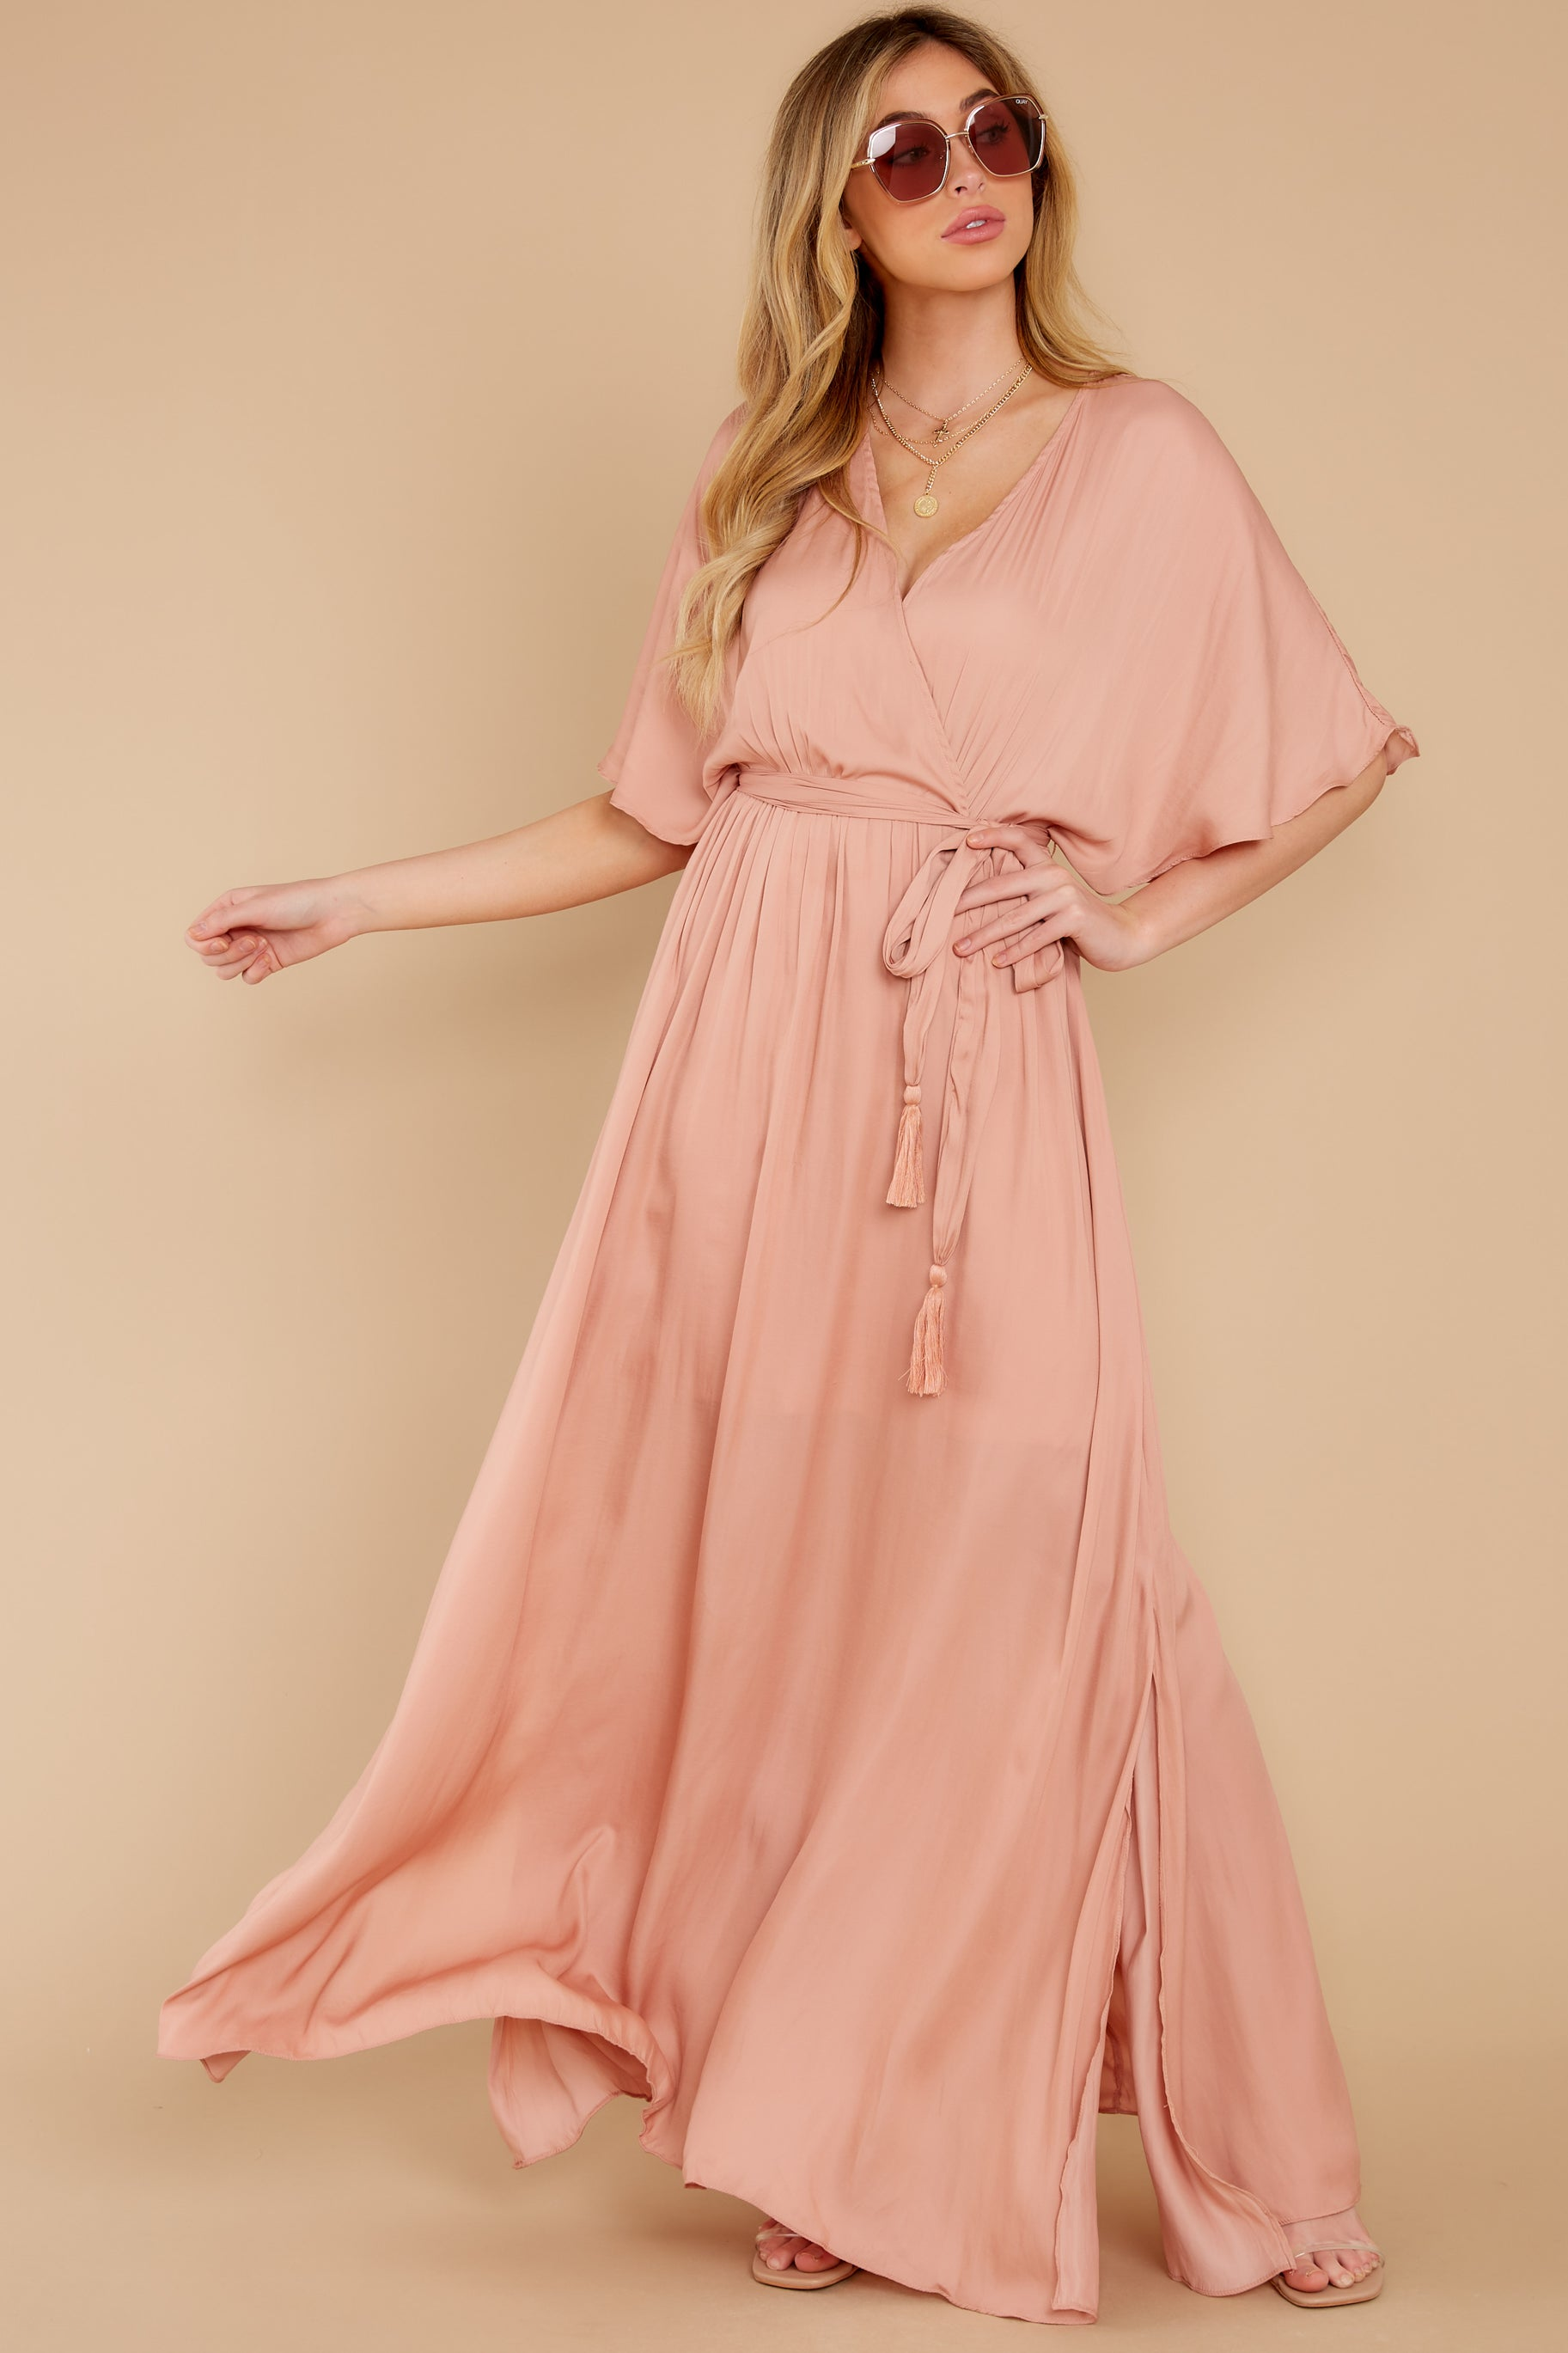 2 Cross My Heart Pink Maxi Dress at reddress.com